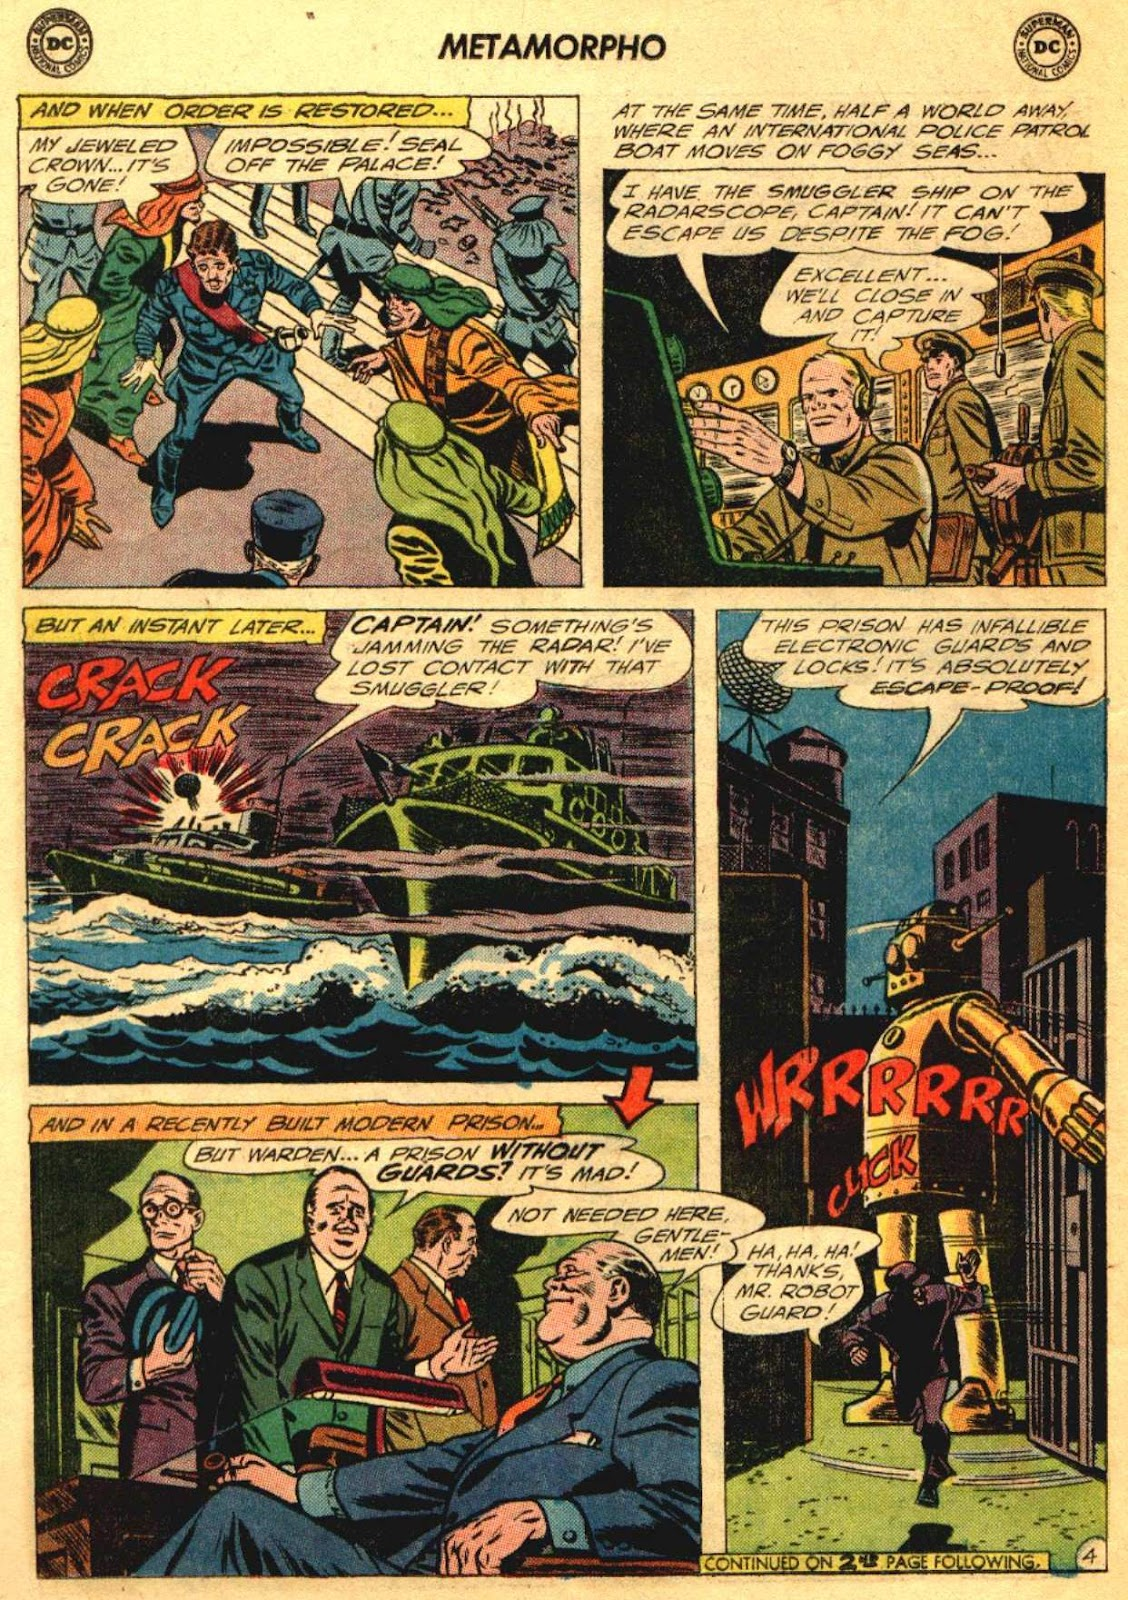 Metamorpho (1965) issue 2 - Page 5